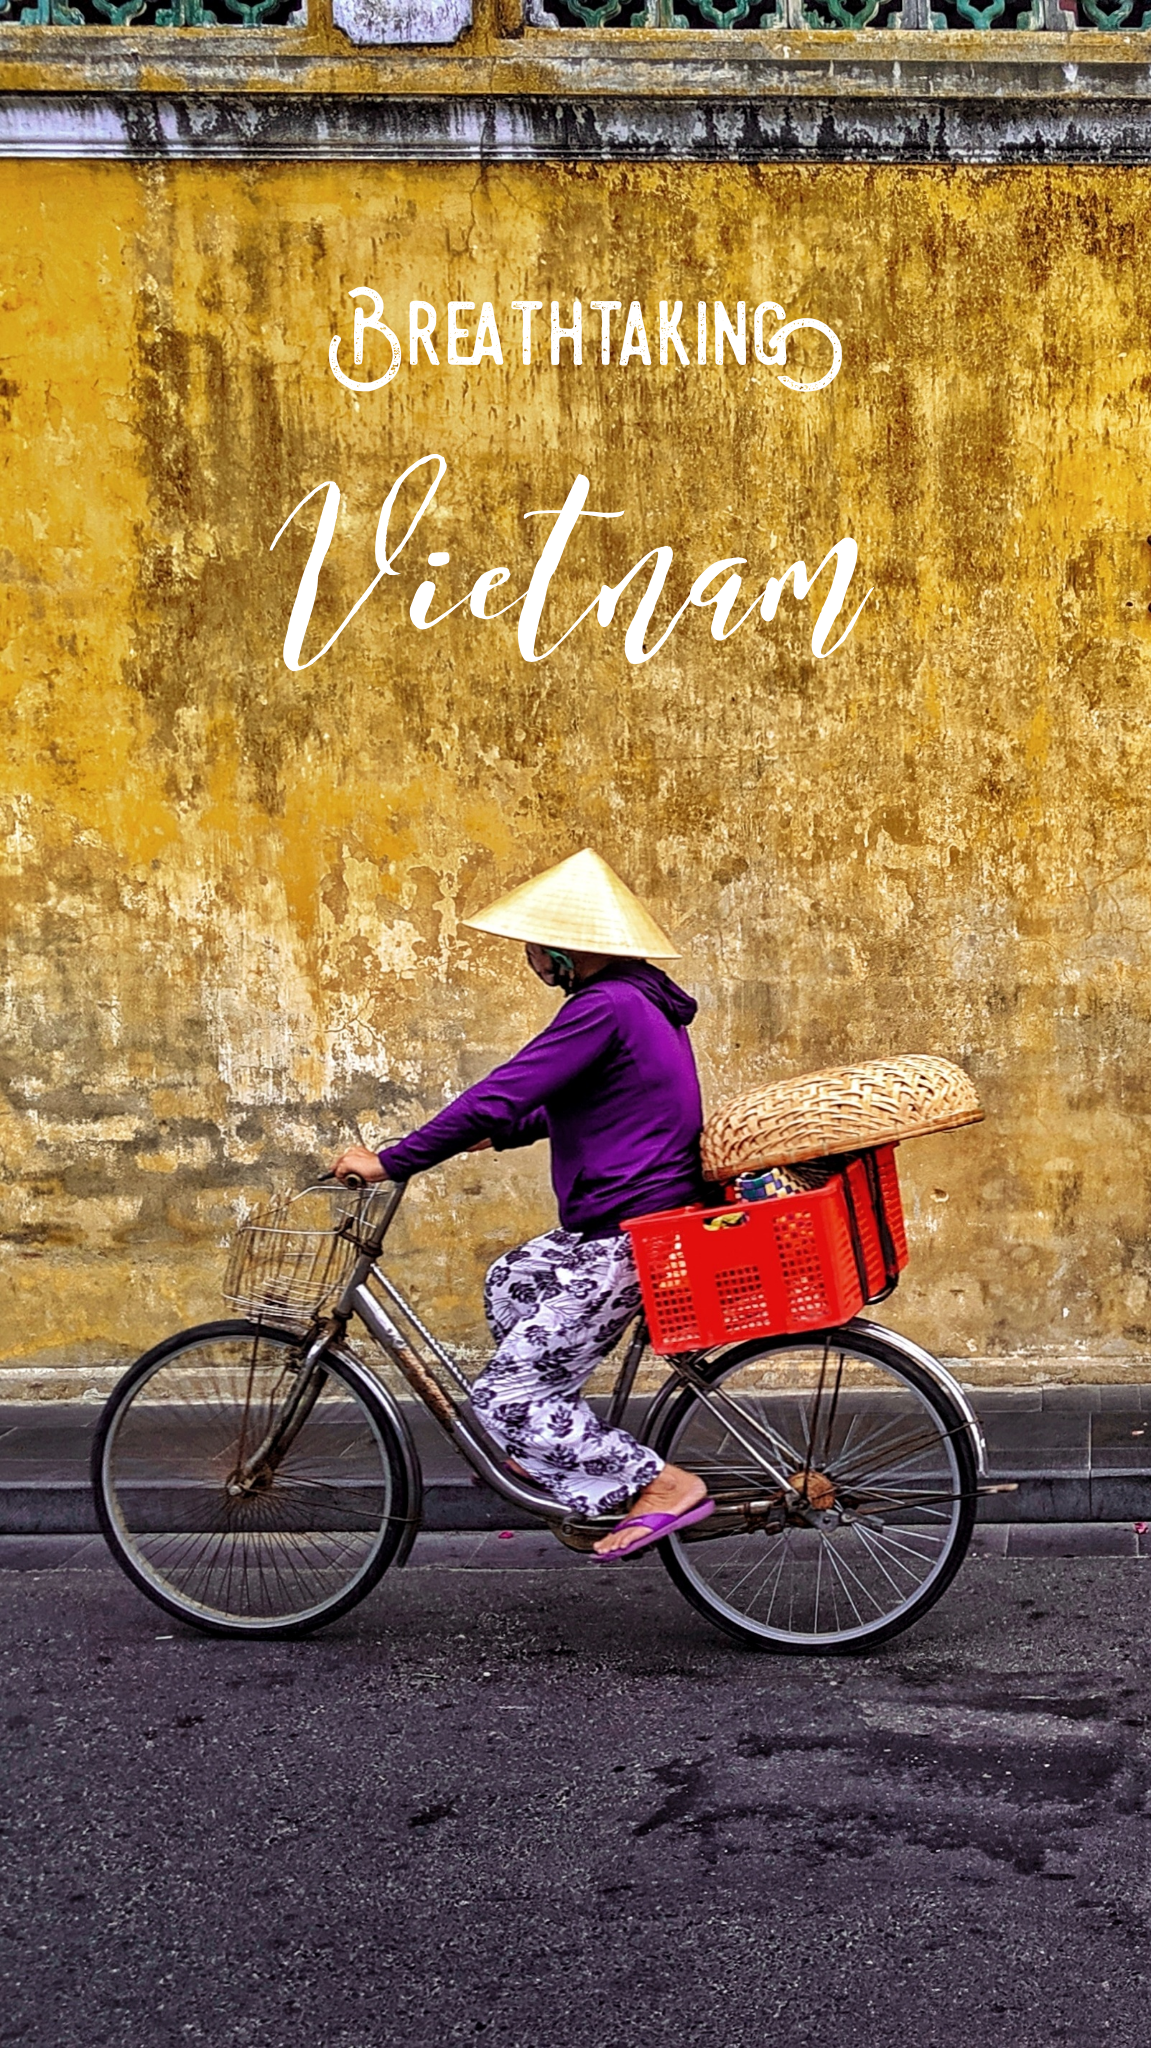 Photo of Vietnam By Neha Sudan